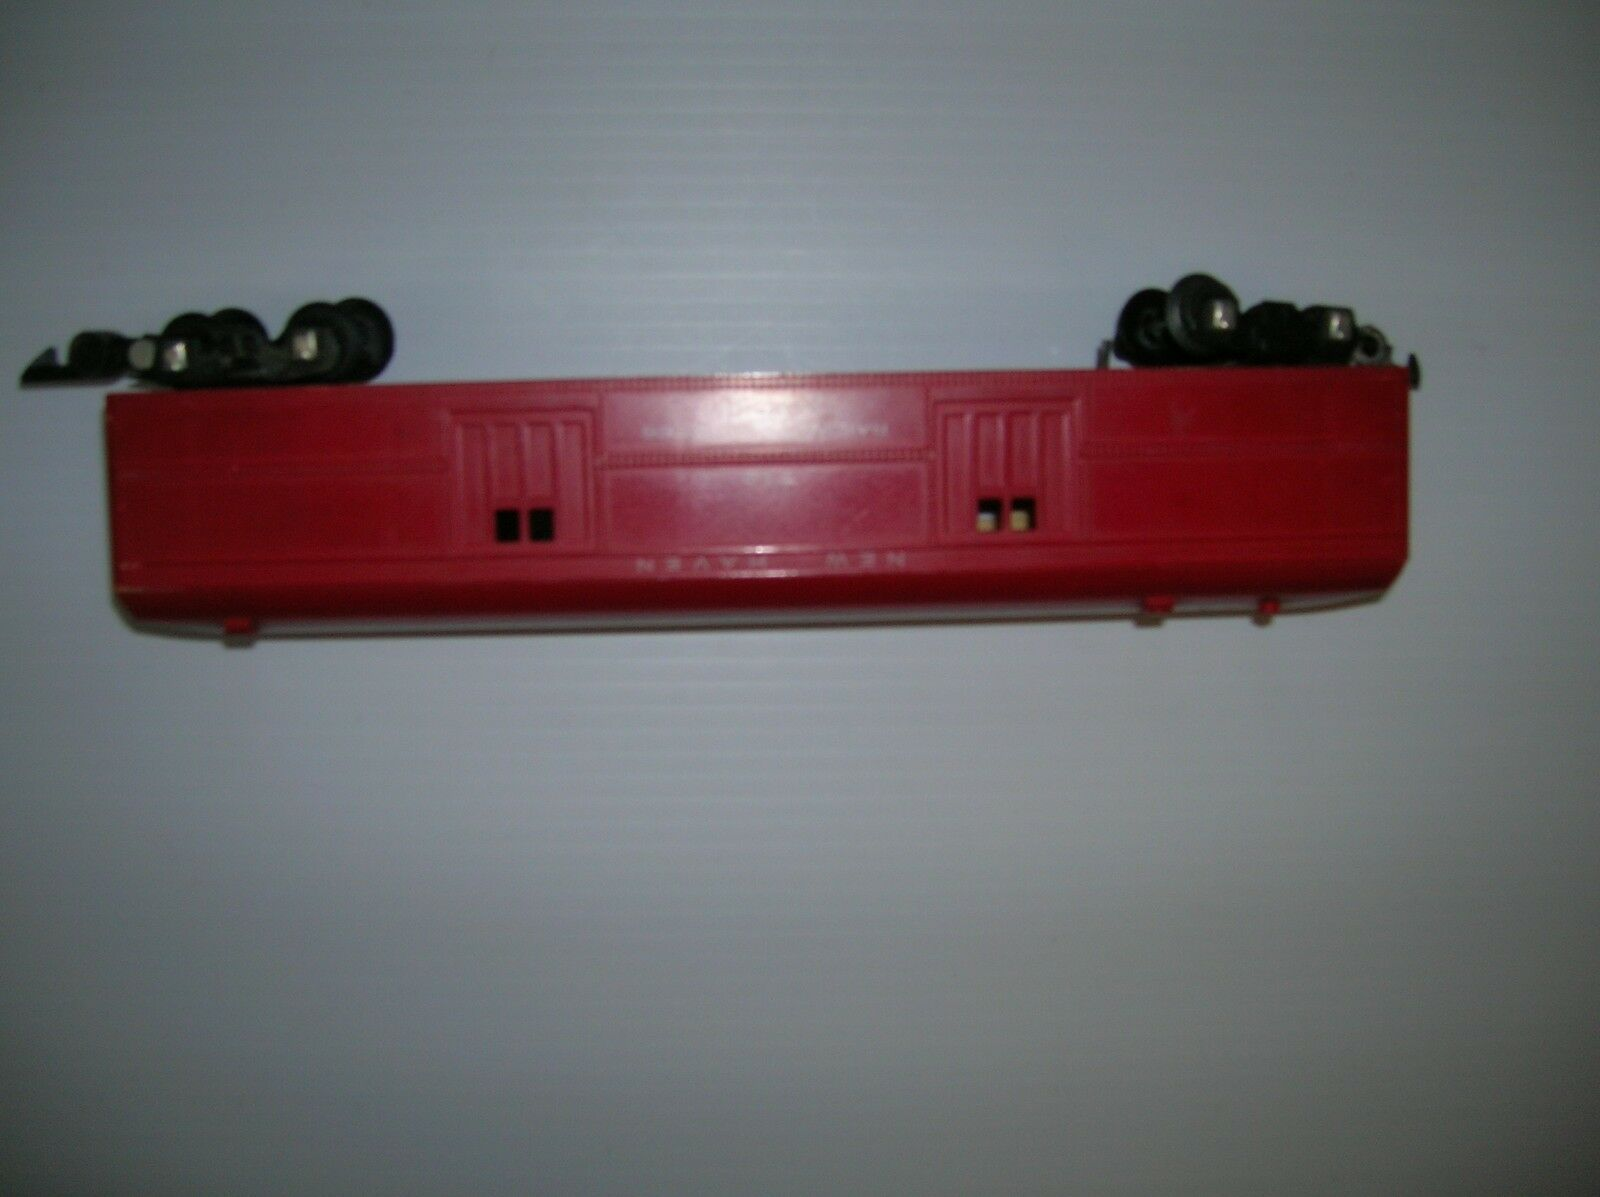 AMERICAN FLYER FLYER FLYER   718 RAILWAY EXPRESS auto , USED( FOR PARTS ONLY )   LOT   16529 279cc9